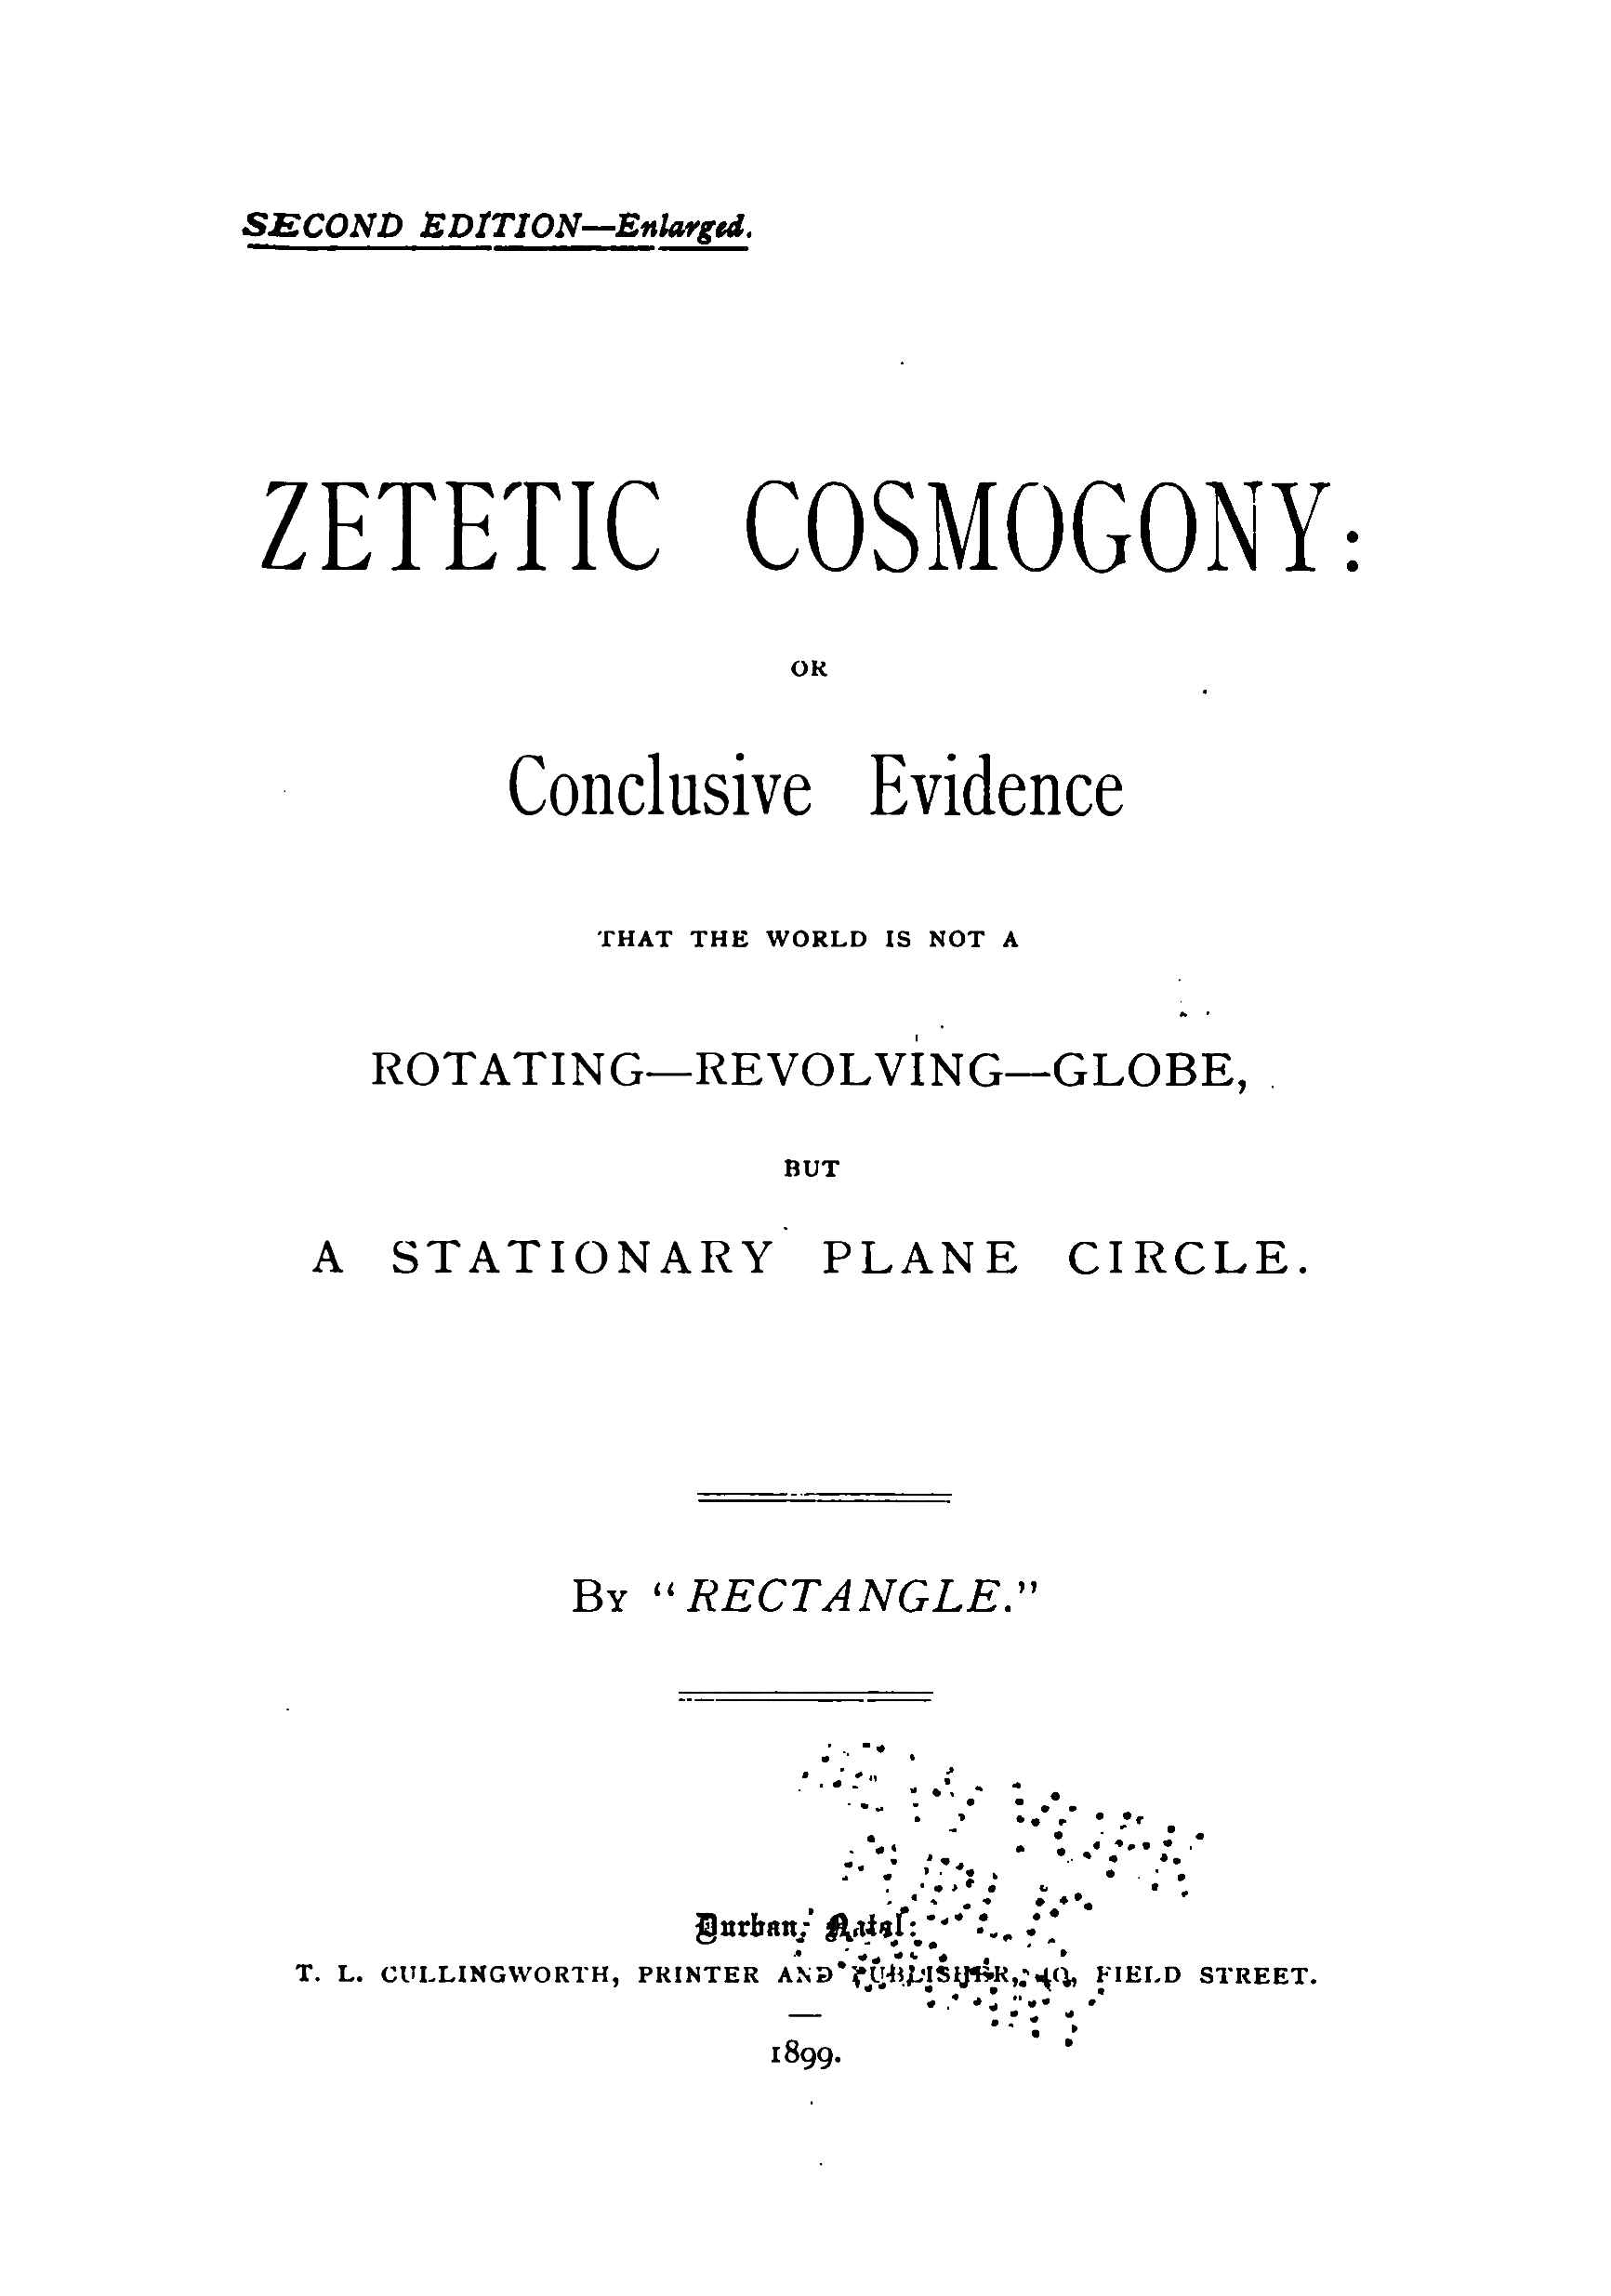 1899 Zetetic Cosmogony Winship Flat Earth Audio Book MP3 ...